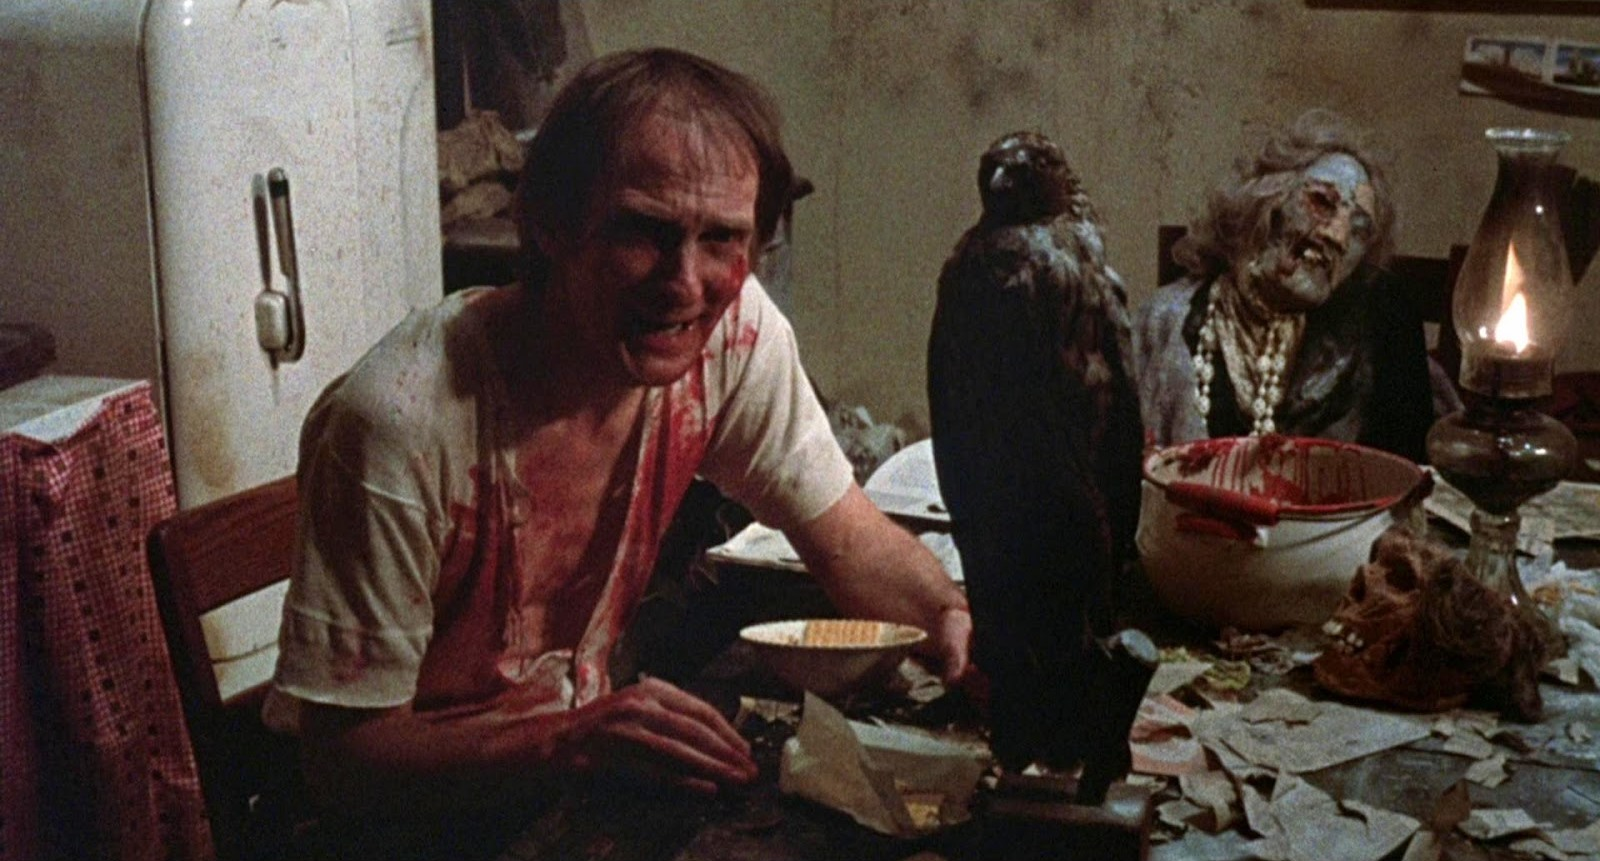 Roberts Blossom as Ezra Cobb based on true-life serial killer and necrophile Ed Gein in Deranged (1974)